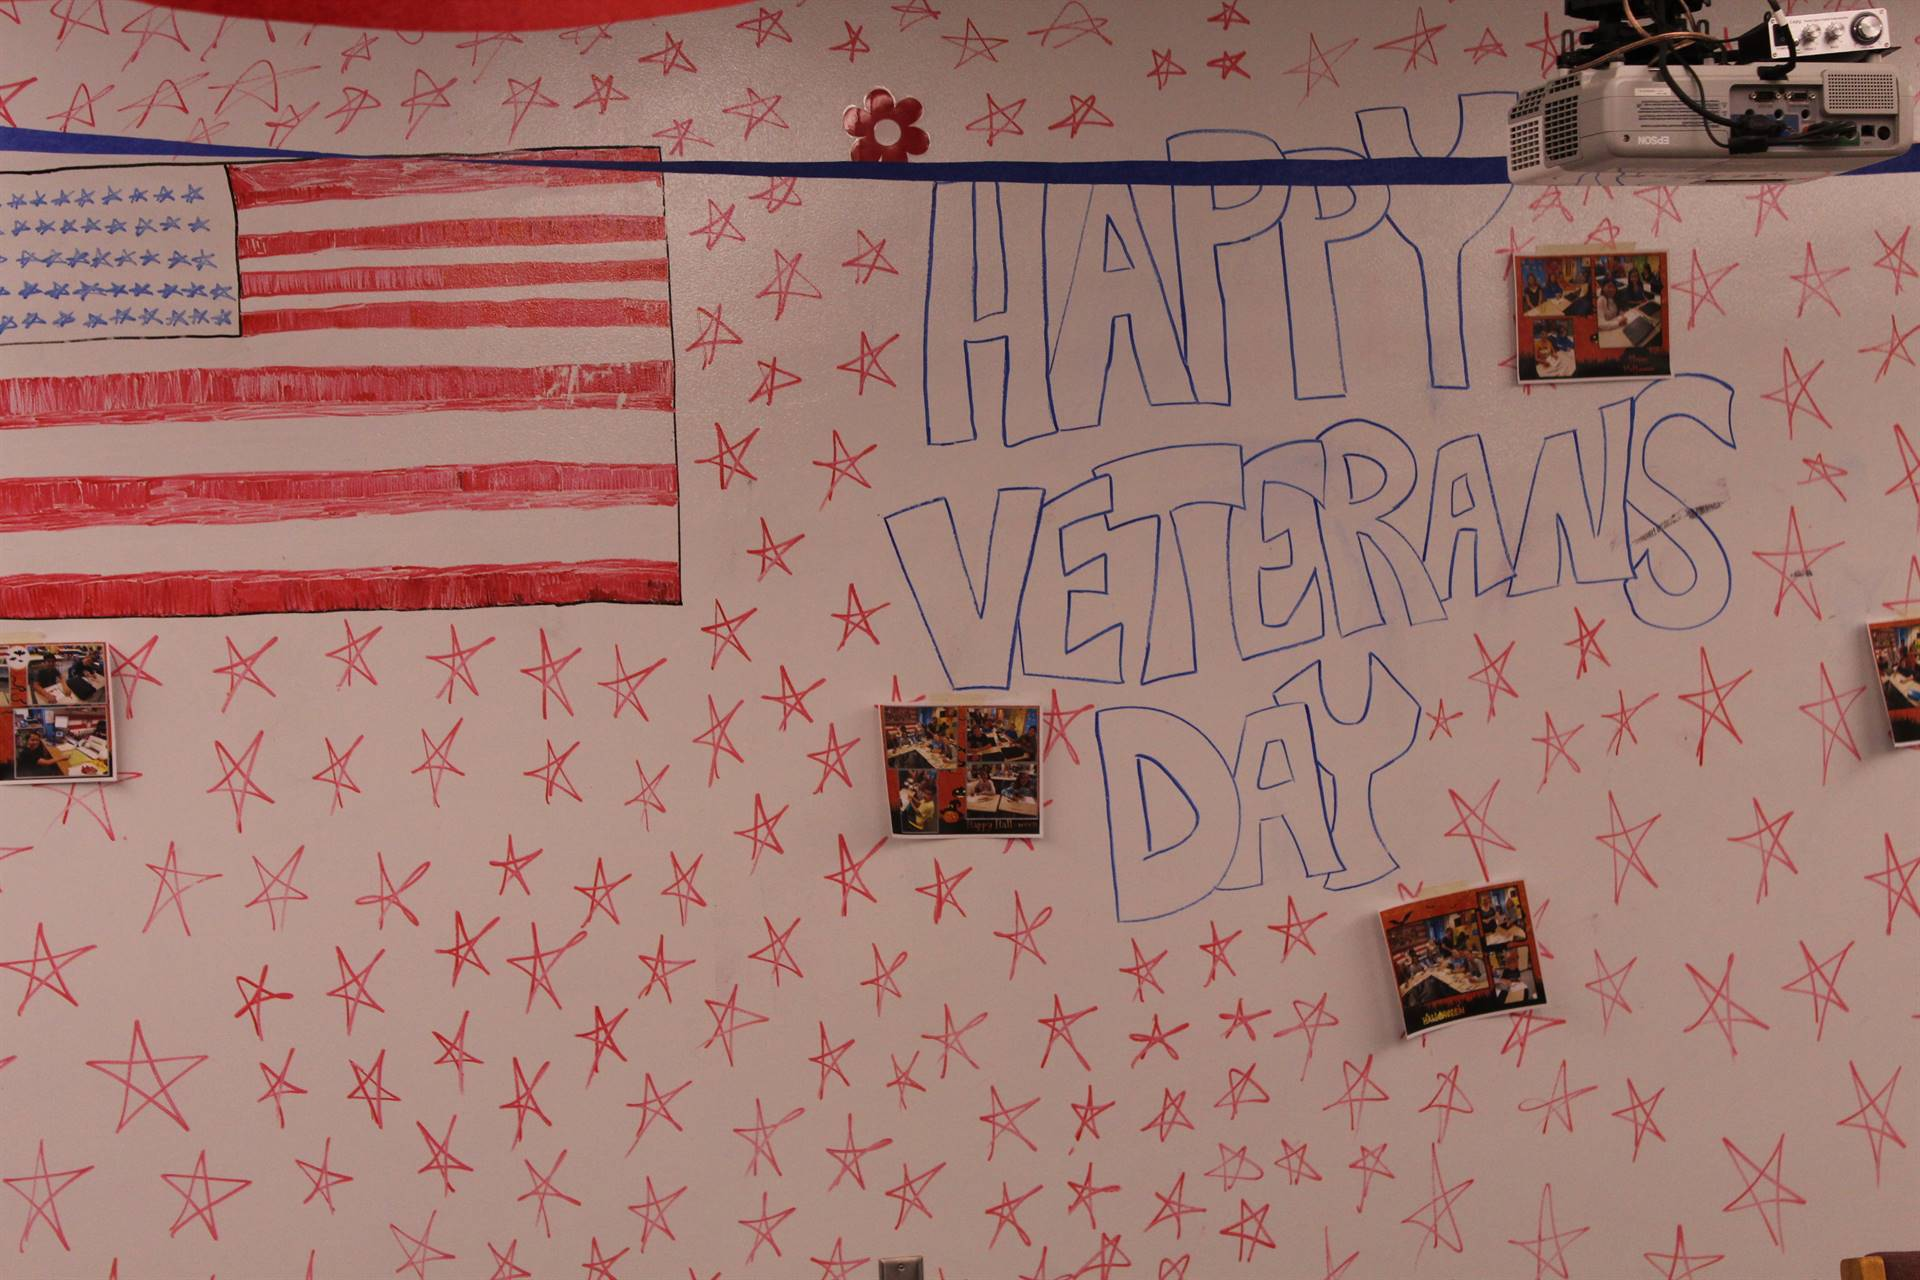 Happy Veterans Day sign